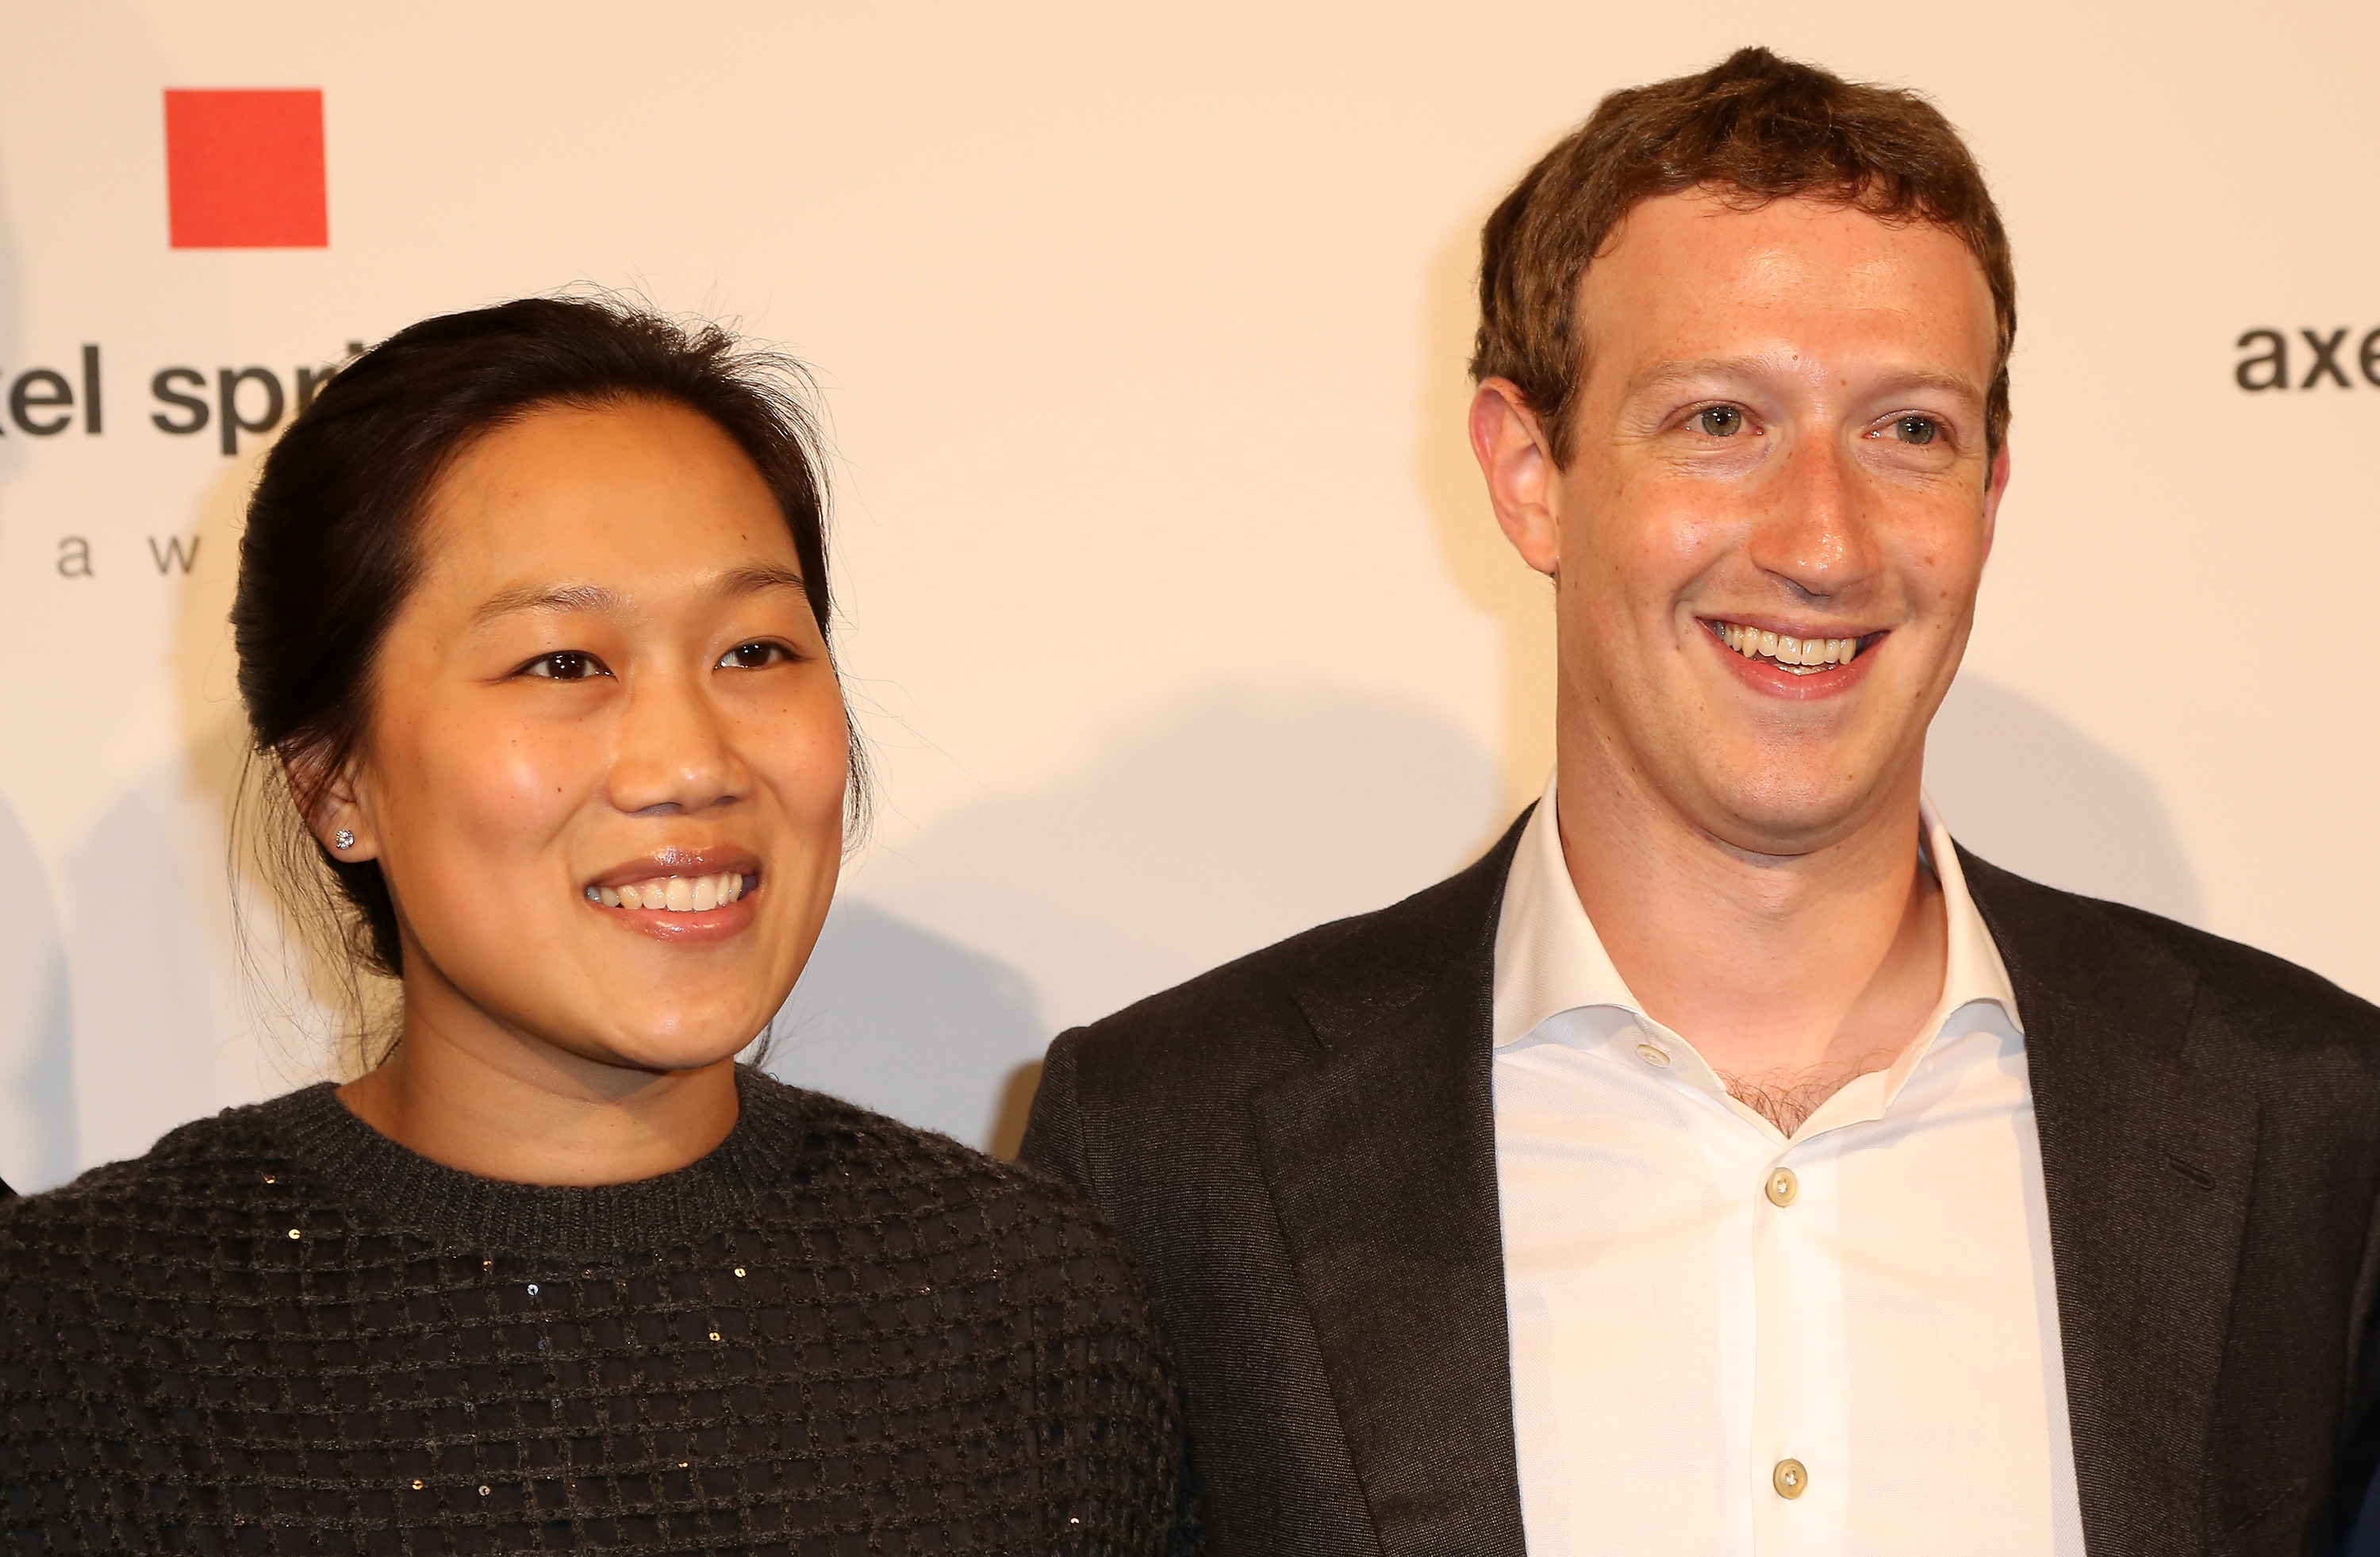 Mark Zuckerberg And His Wife Just Invested $3bn To Cure All Diseases GettyImages 512267506